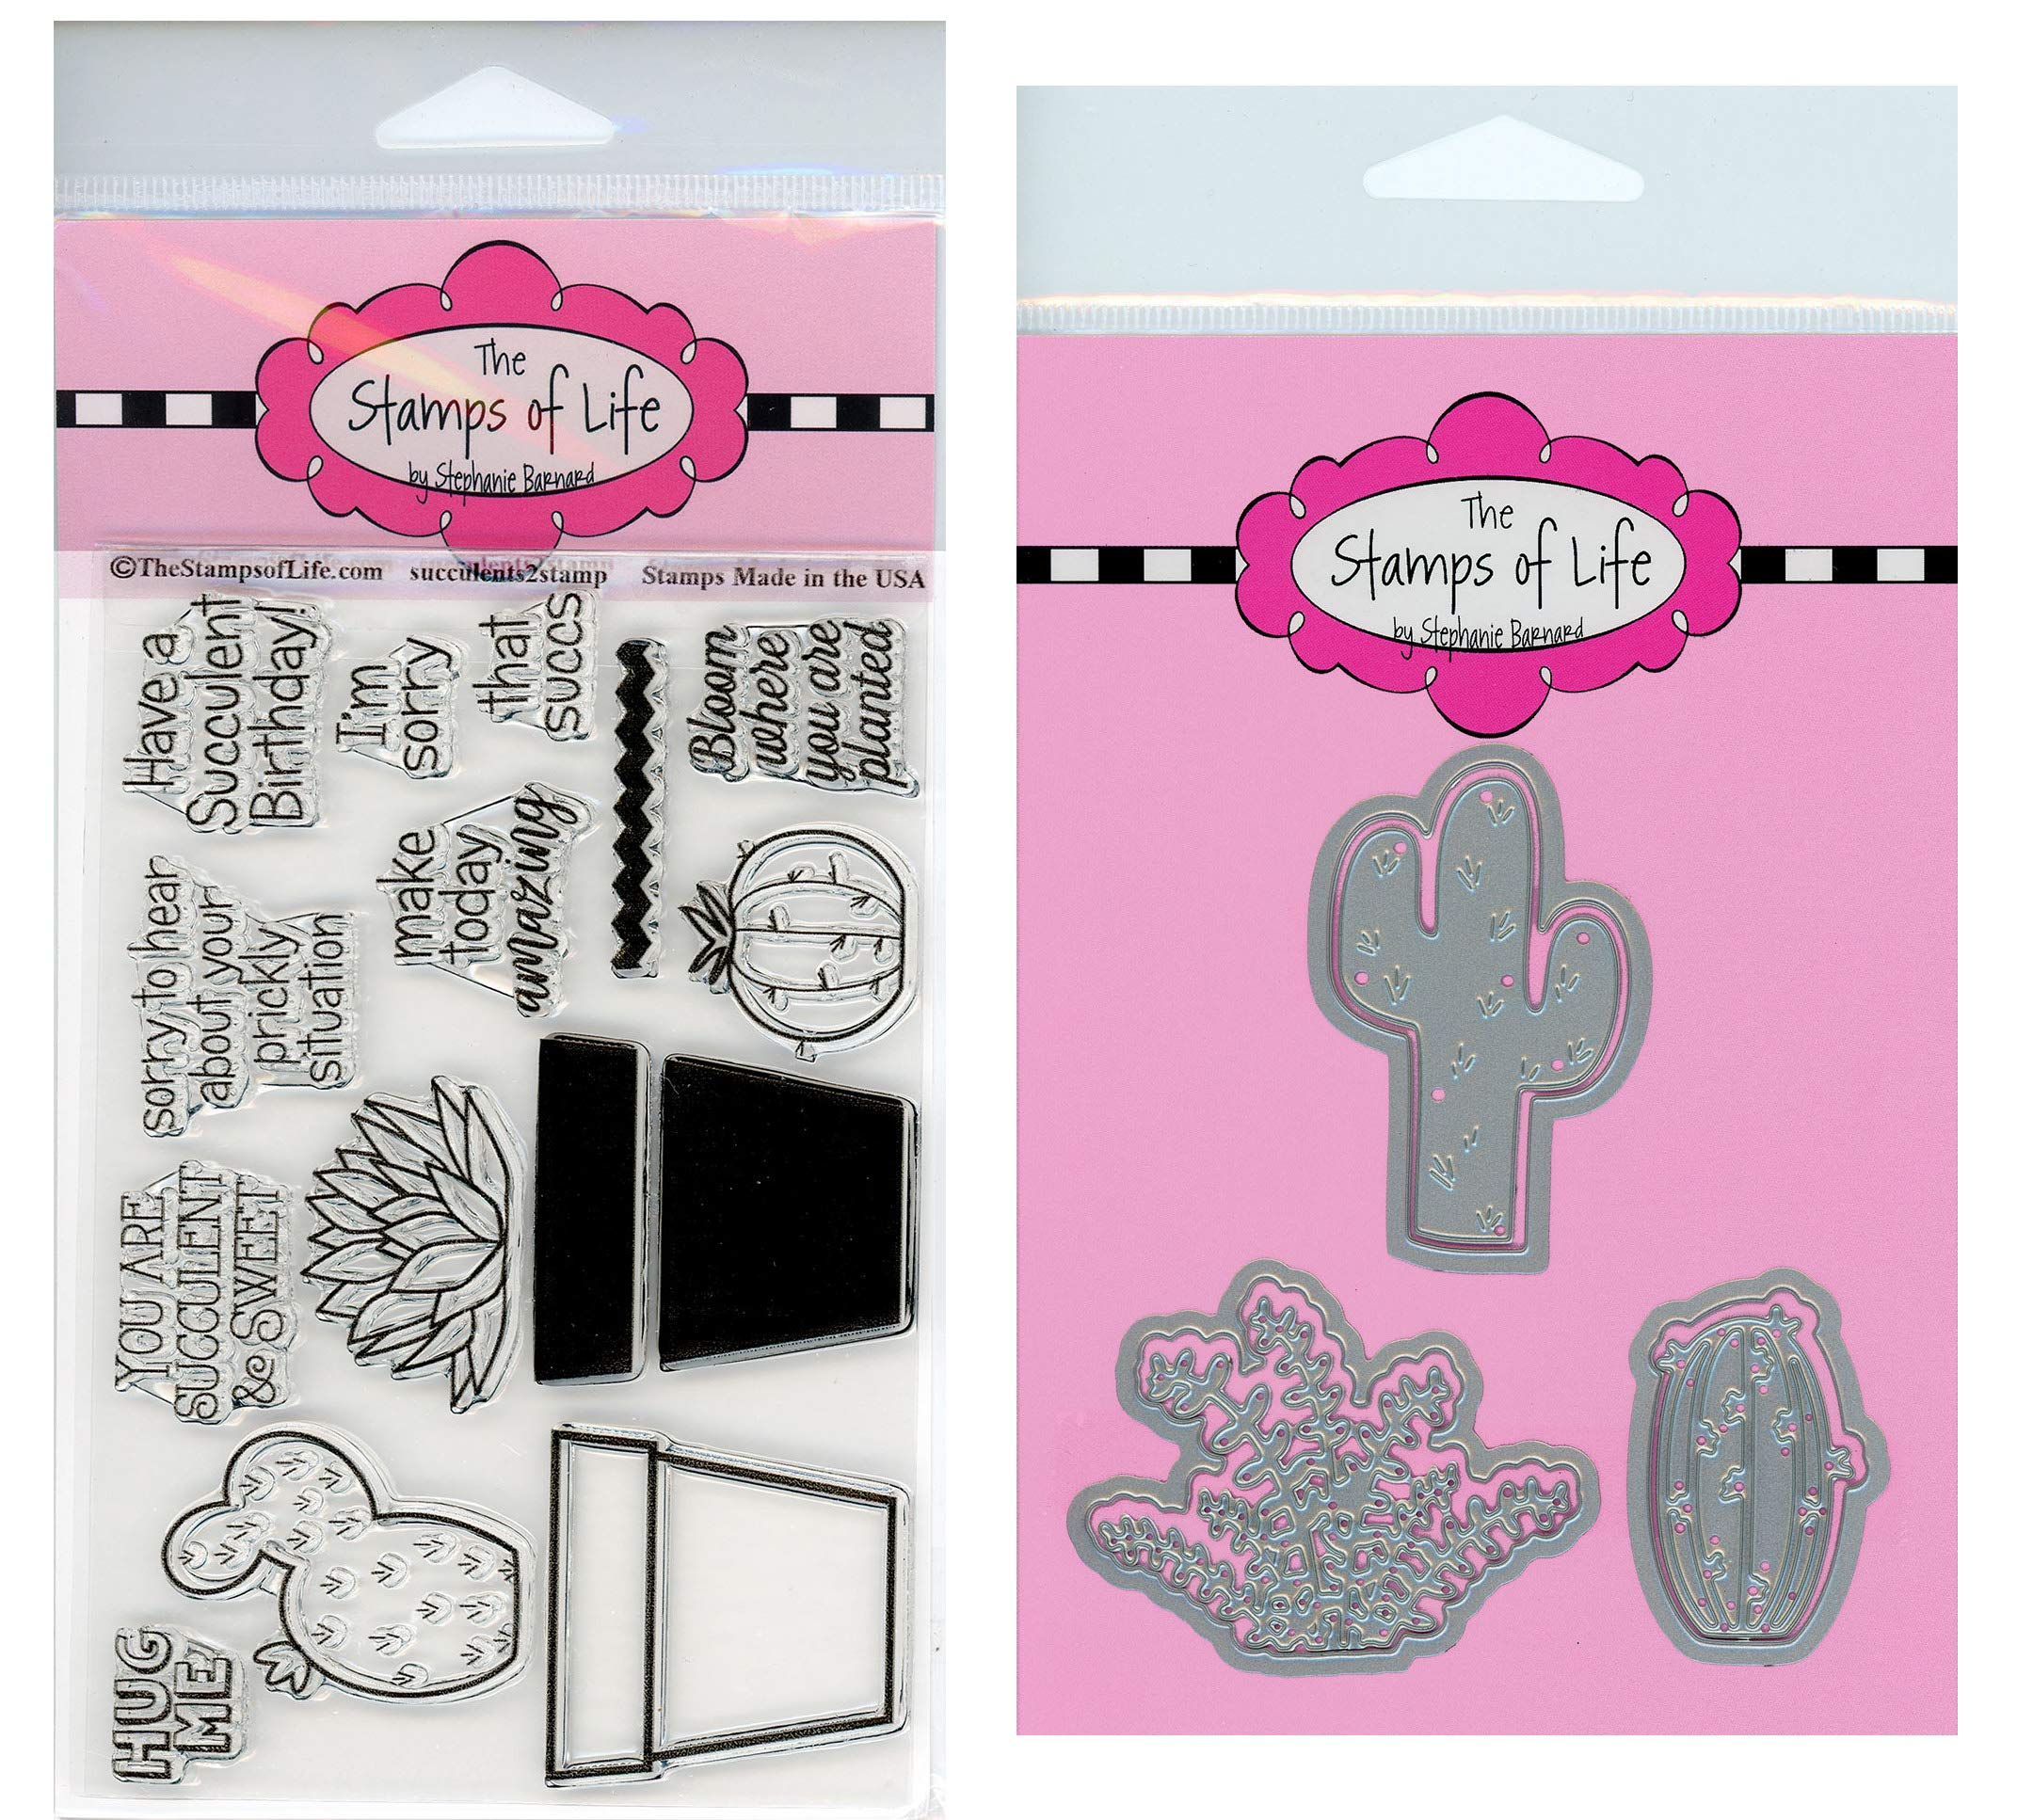 Fun Cactus Plants Succulents Stamps and Dies for Scrapbooking and Card-Making by The Stamps of Life - Succulents2Stamp and Succulents Two Die-Cuts